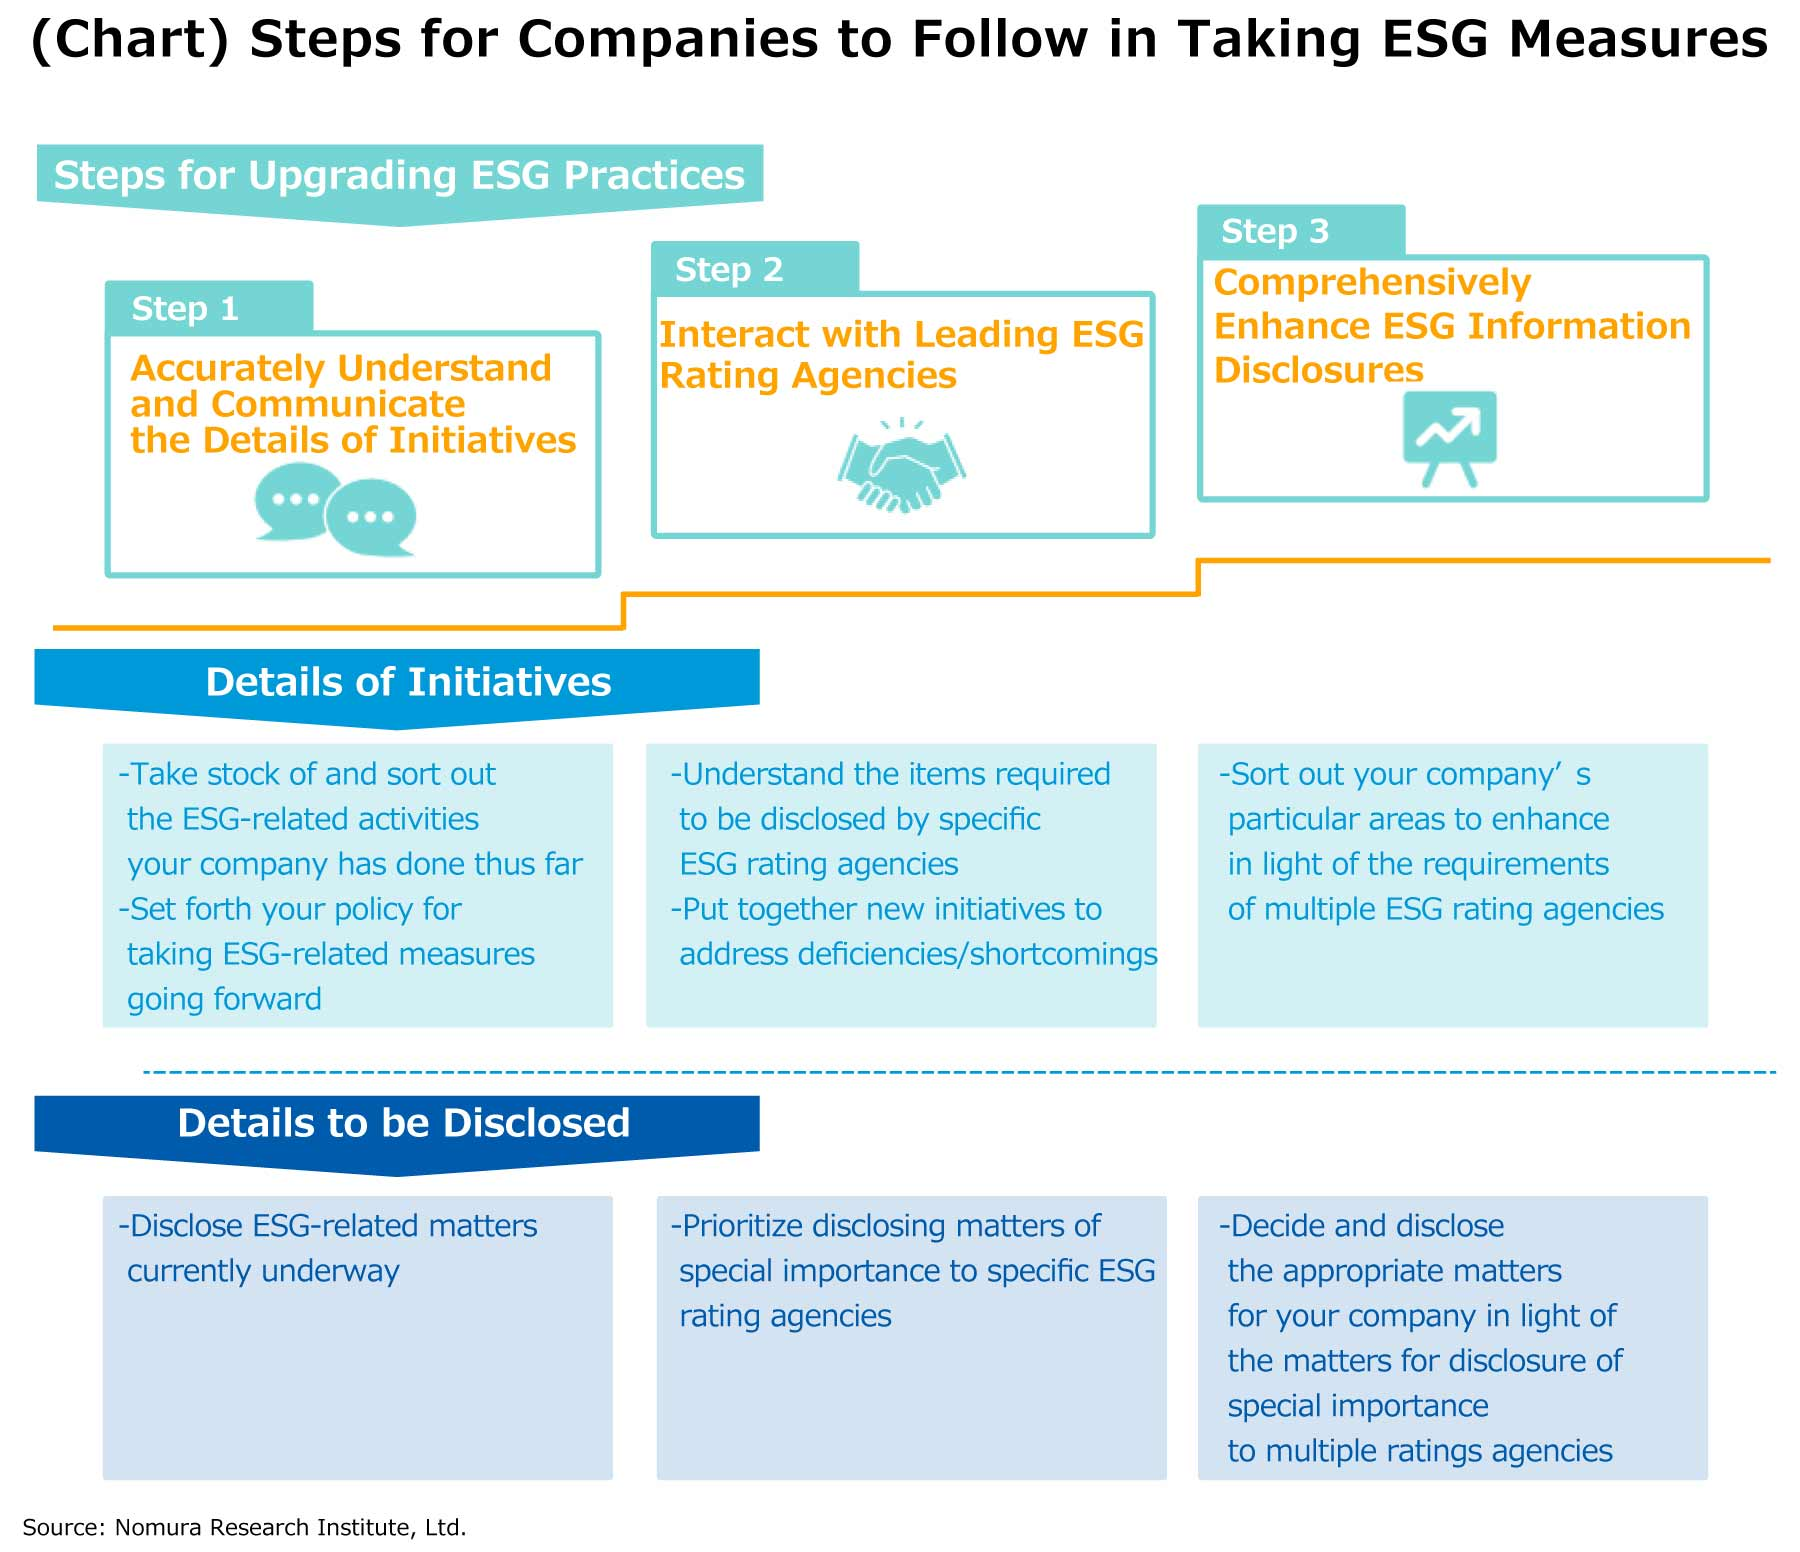 (Chart) Steps for Companies to Follow in Taking ESG Measures